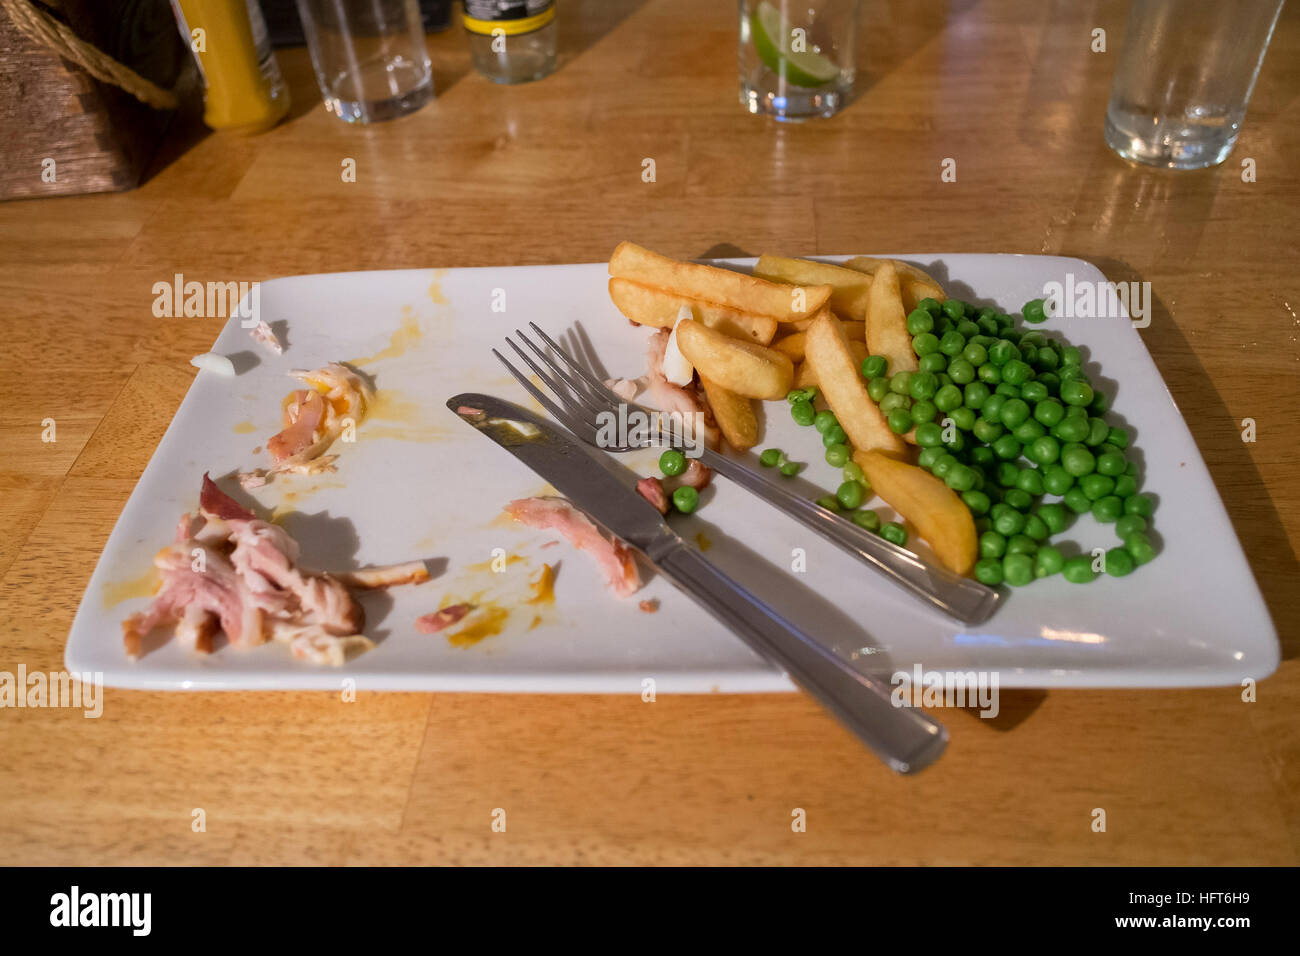 The remains of a meal. - Stock Image